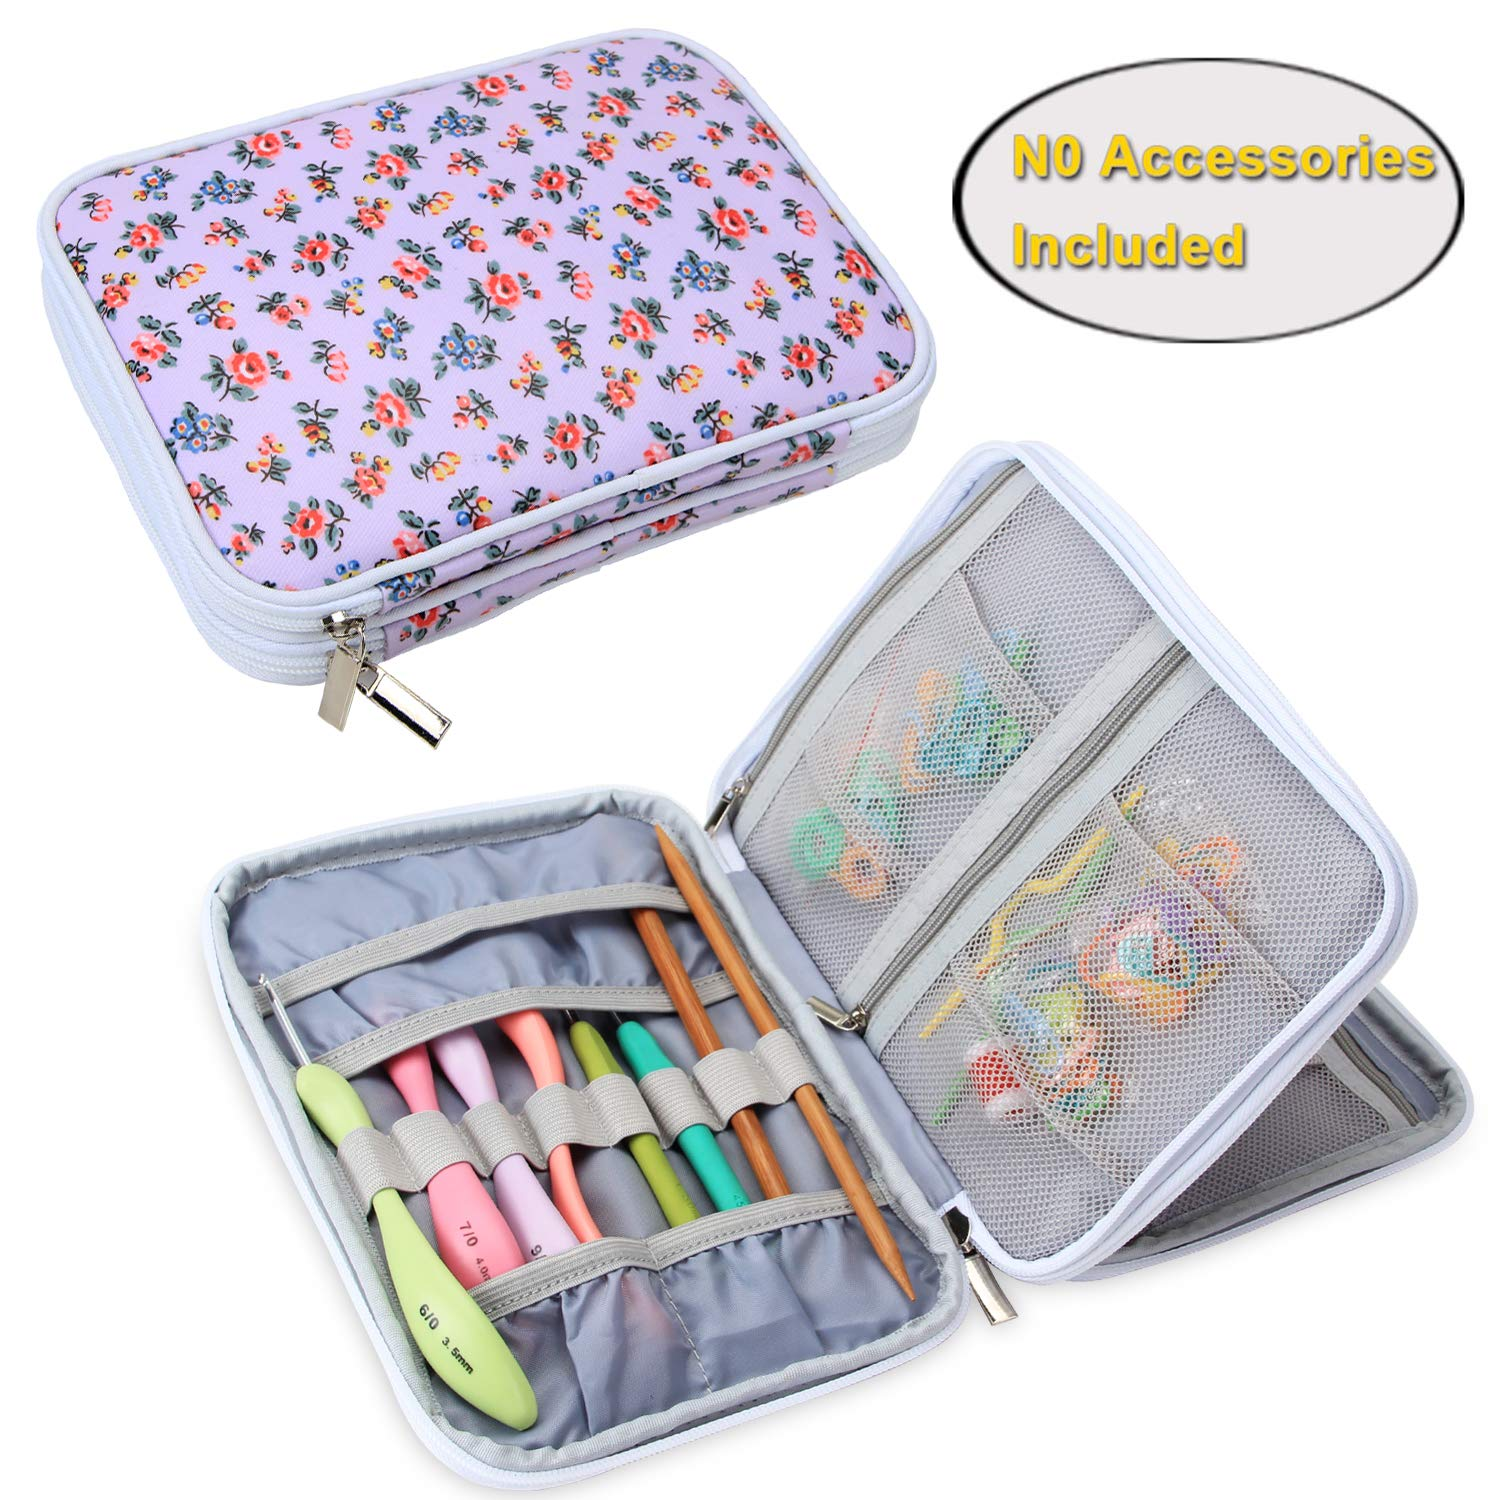 Teamoy Crochet Hook Case, Travel Storage Bag for Swing Crochet Hooks, Lighted Hooks, Needles(Up to 8'') and Accessories, Purple Flowers(No Accessories Included)